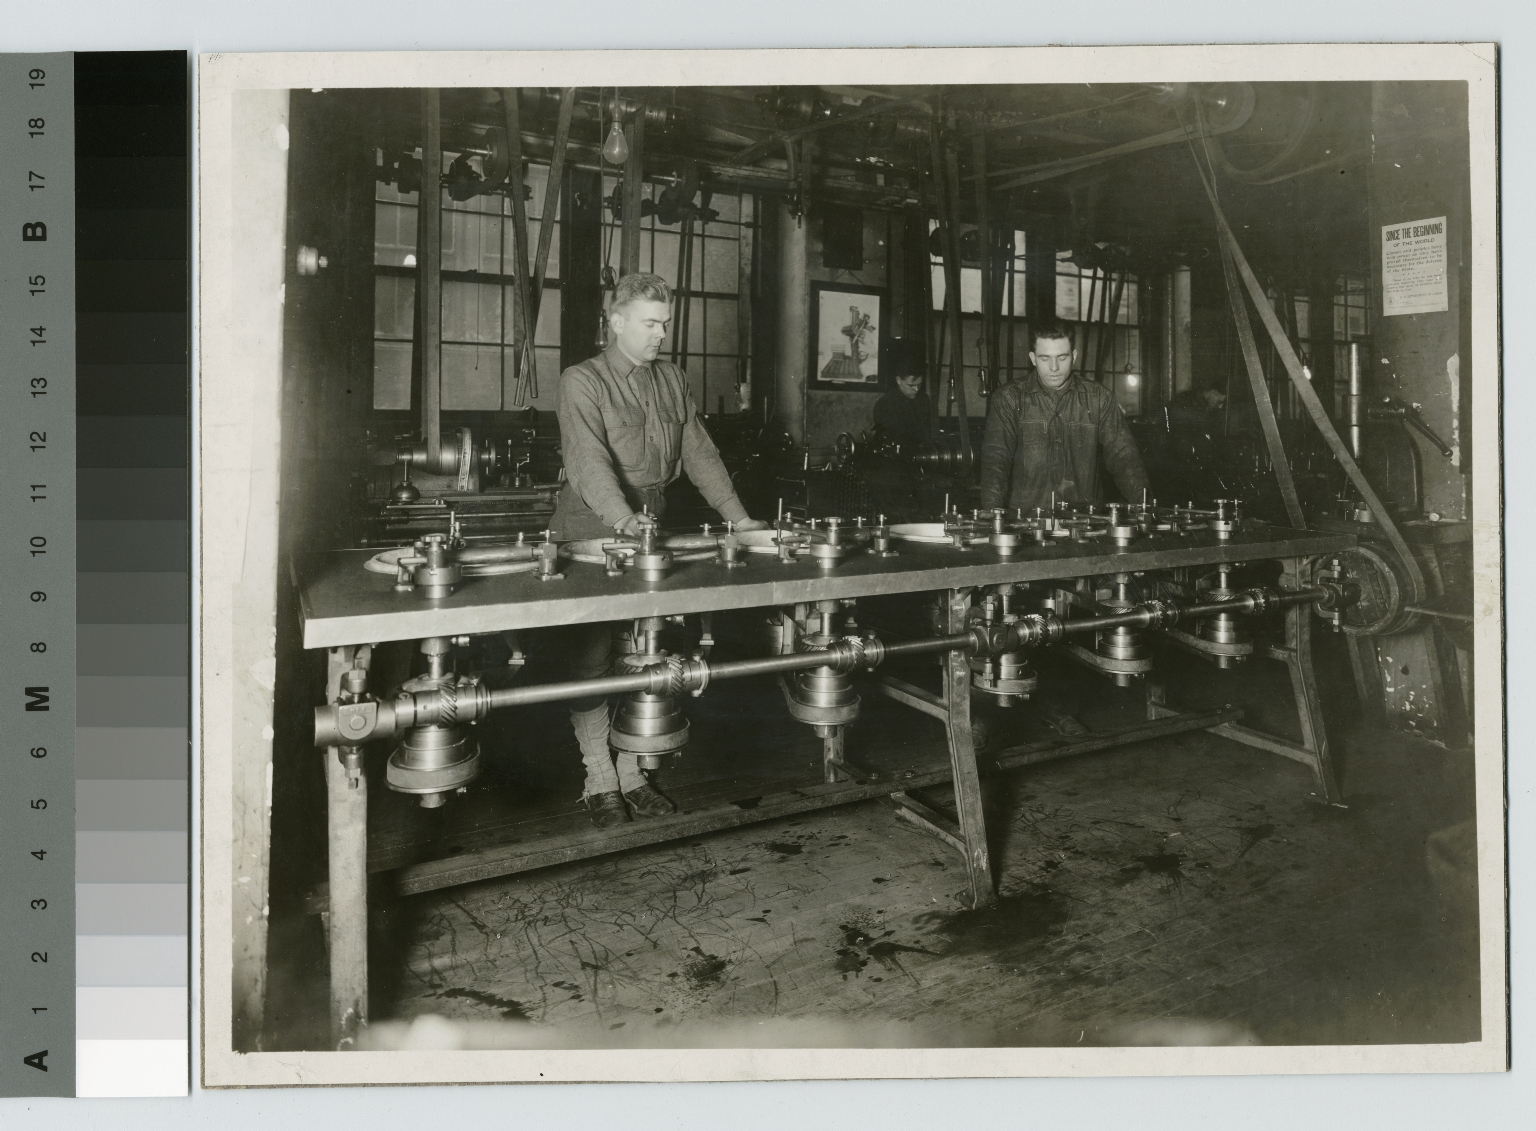 Students at lens grinding machines, Rochester Athenaeum and Mechanics Institute